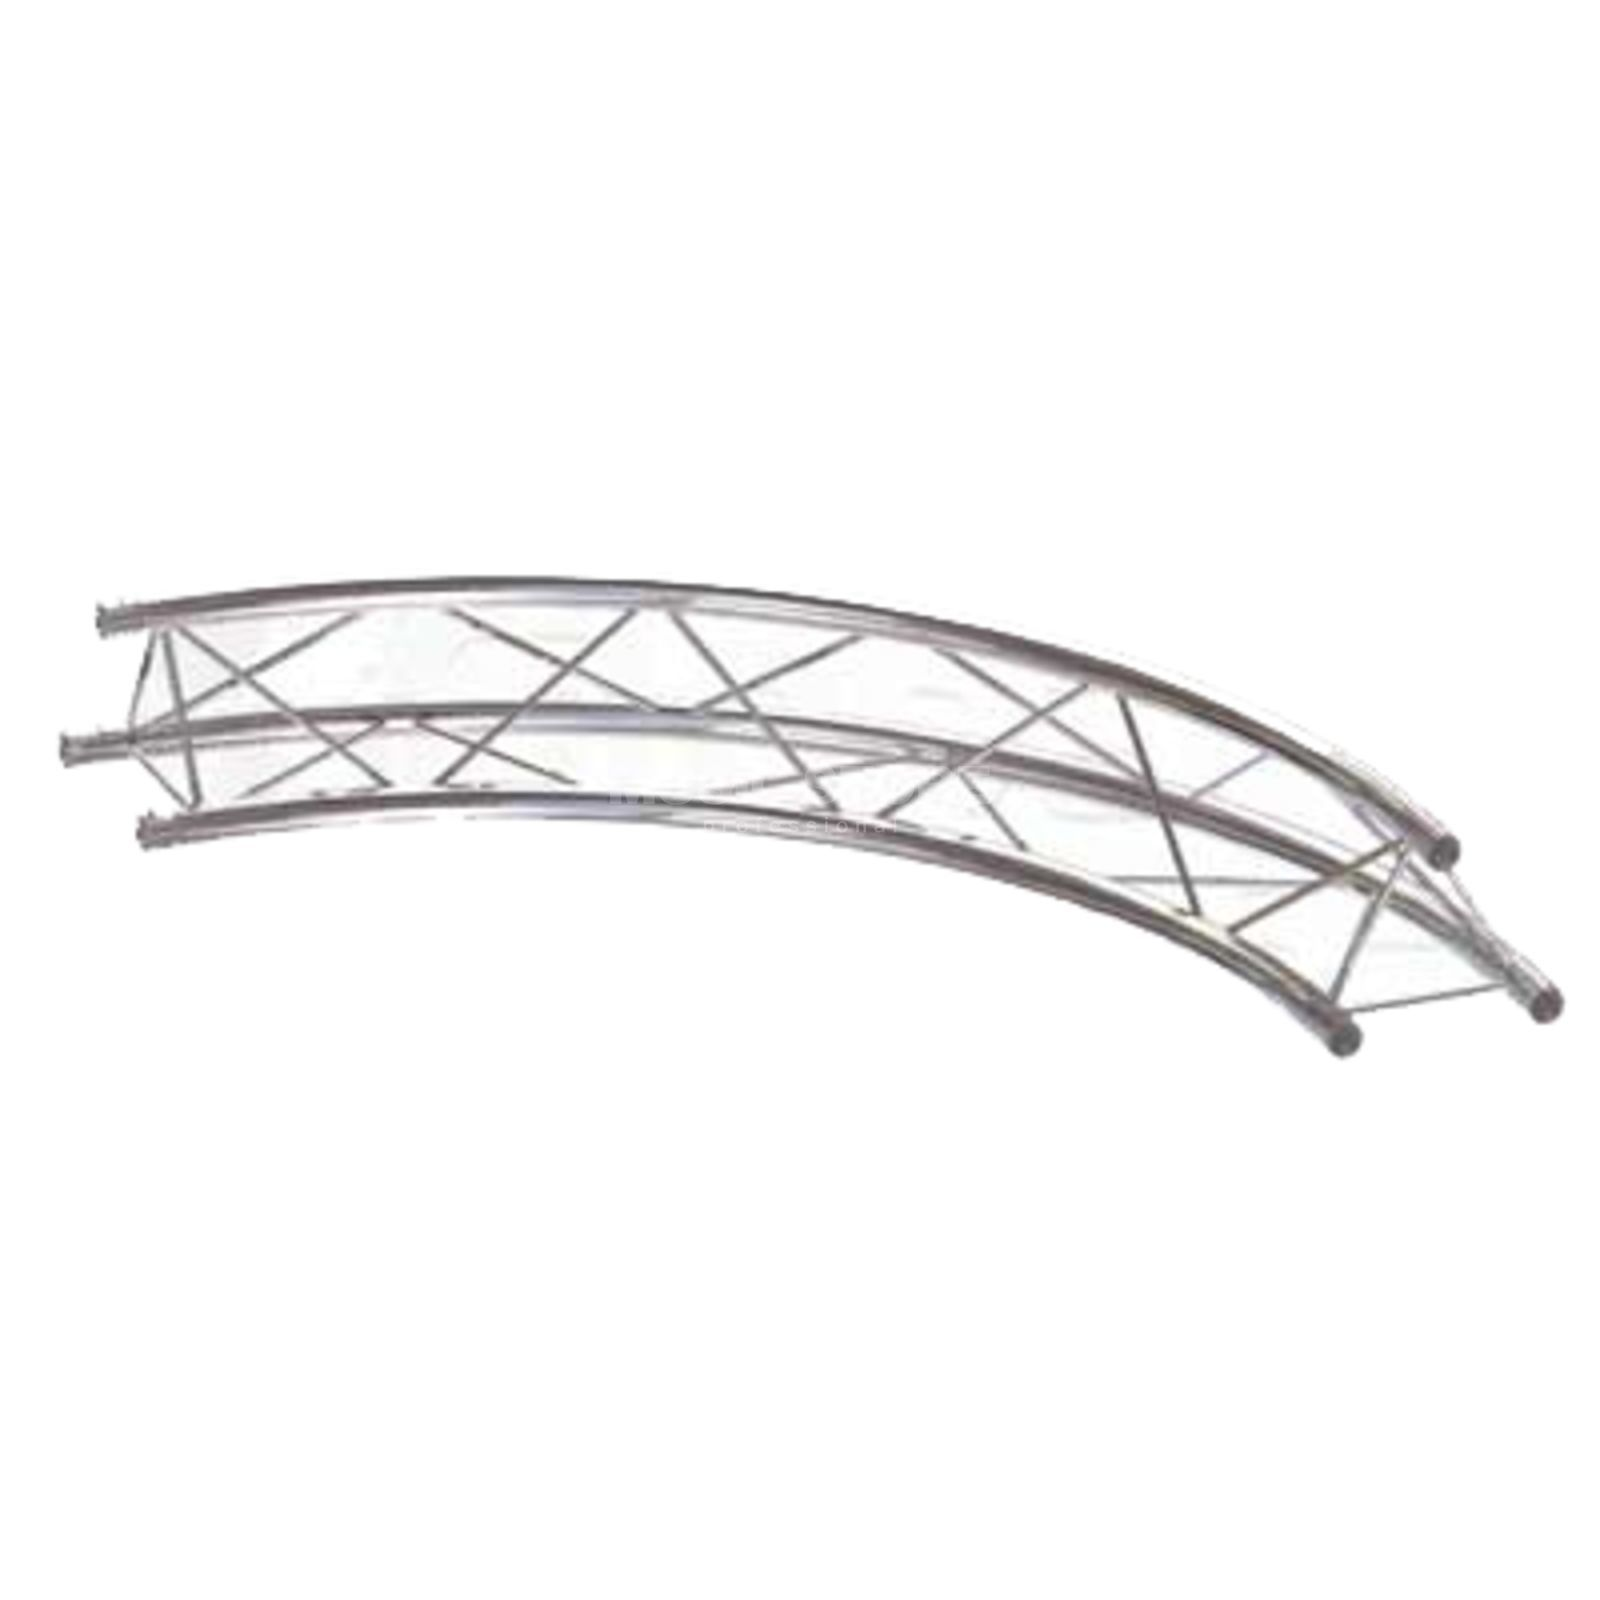 Global Truss F23 Decotruss Circular 90° 3m Produktbillede